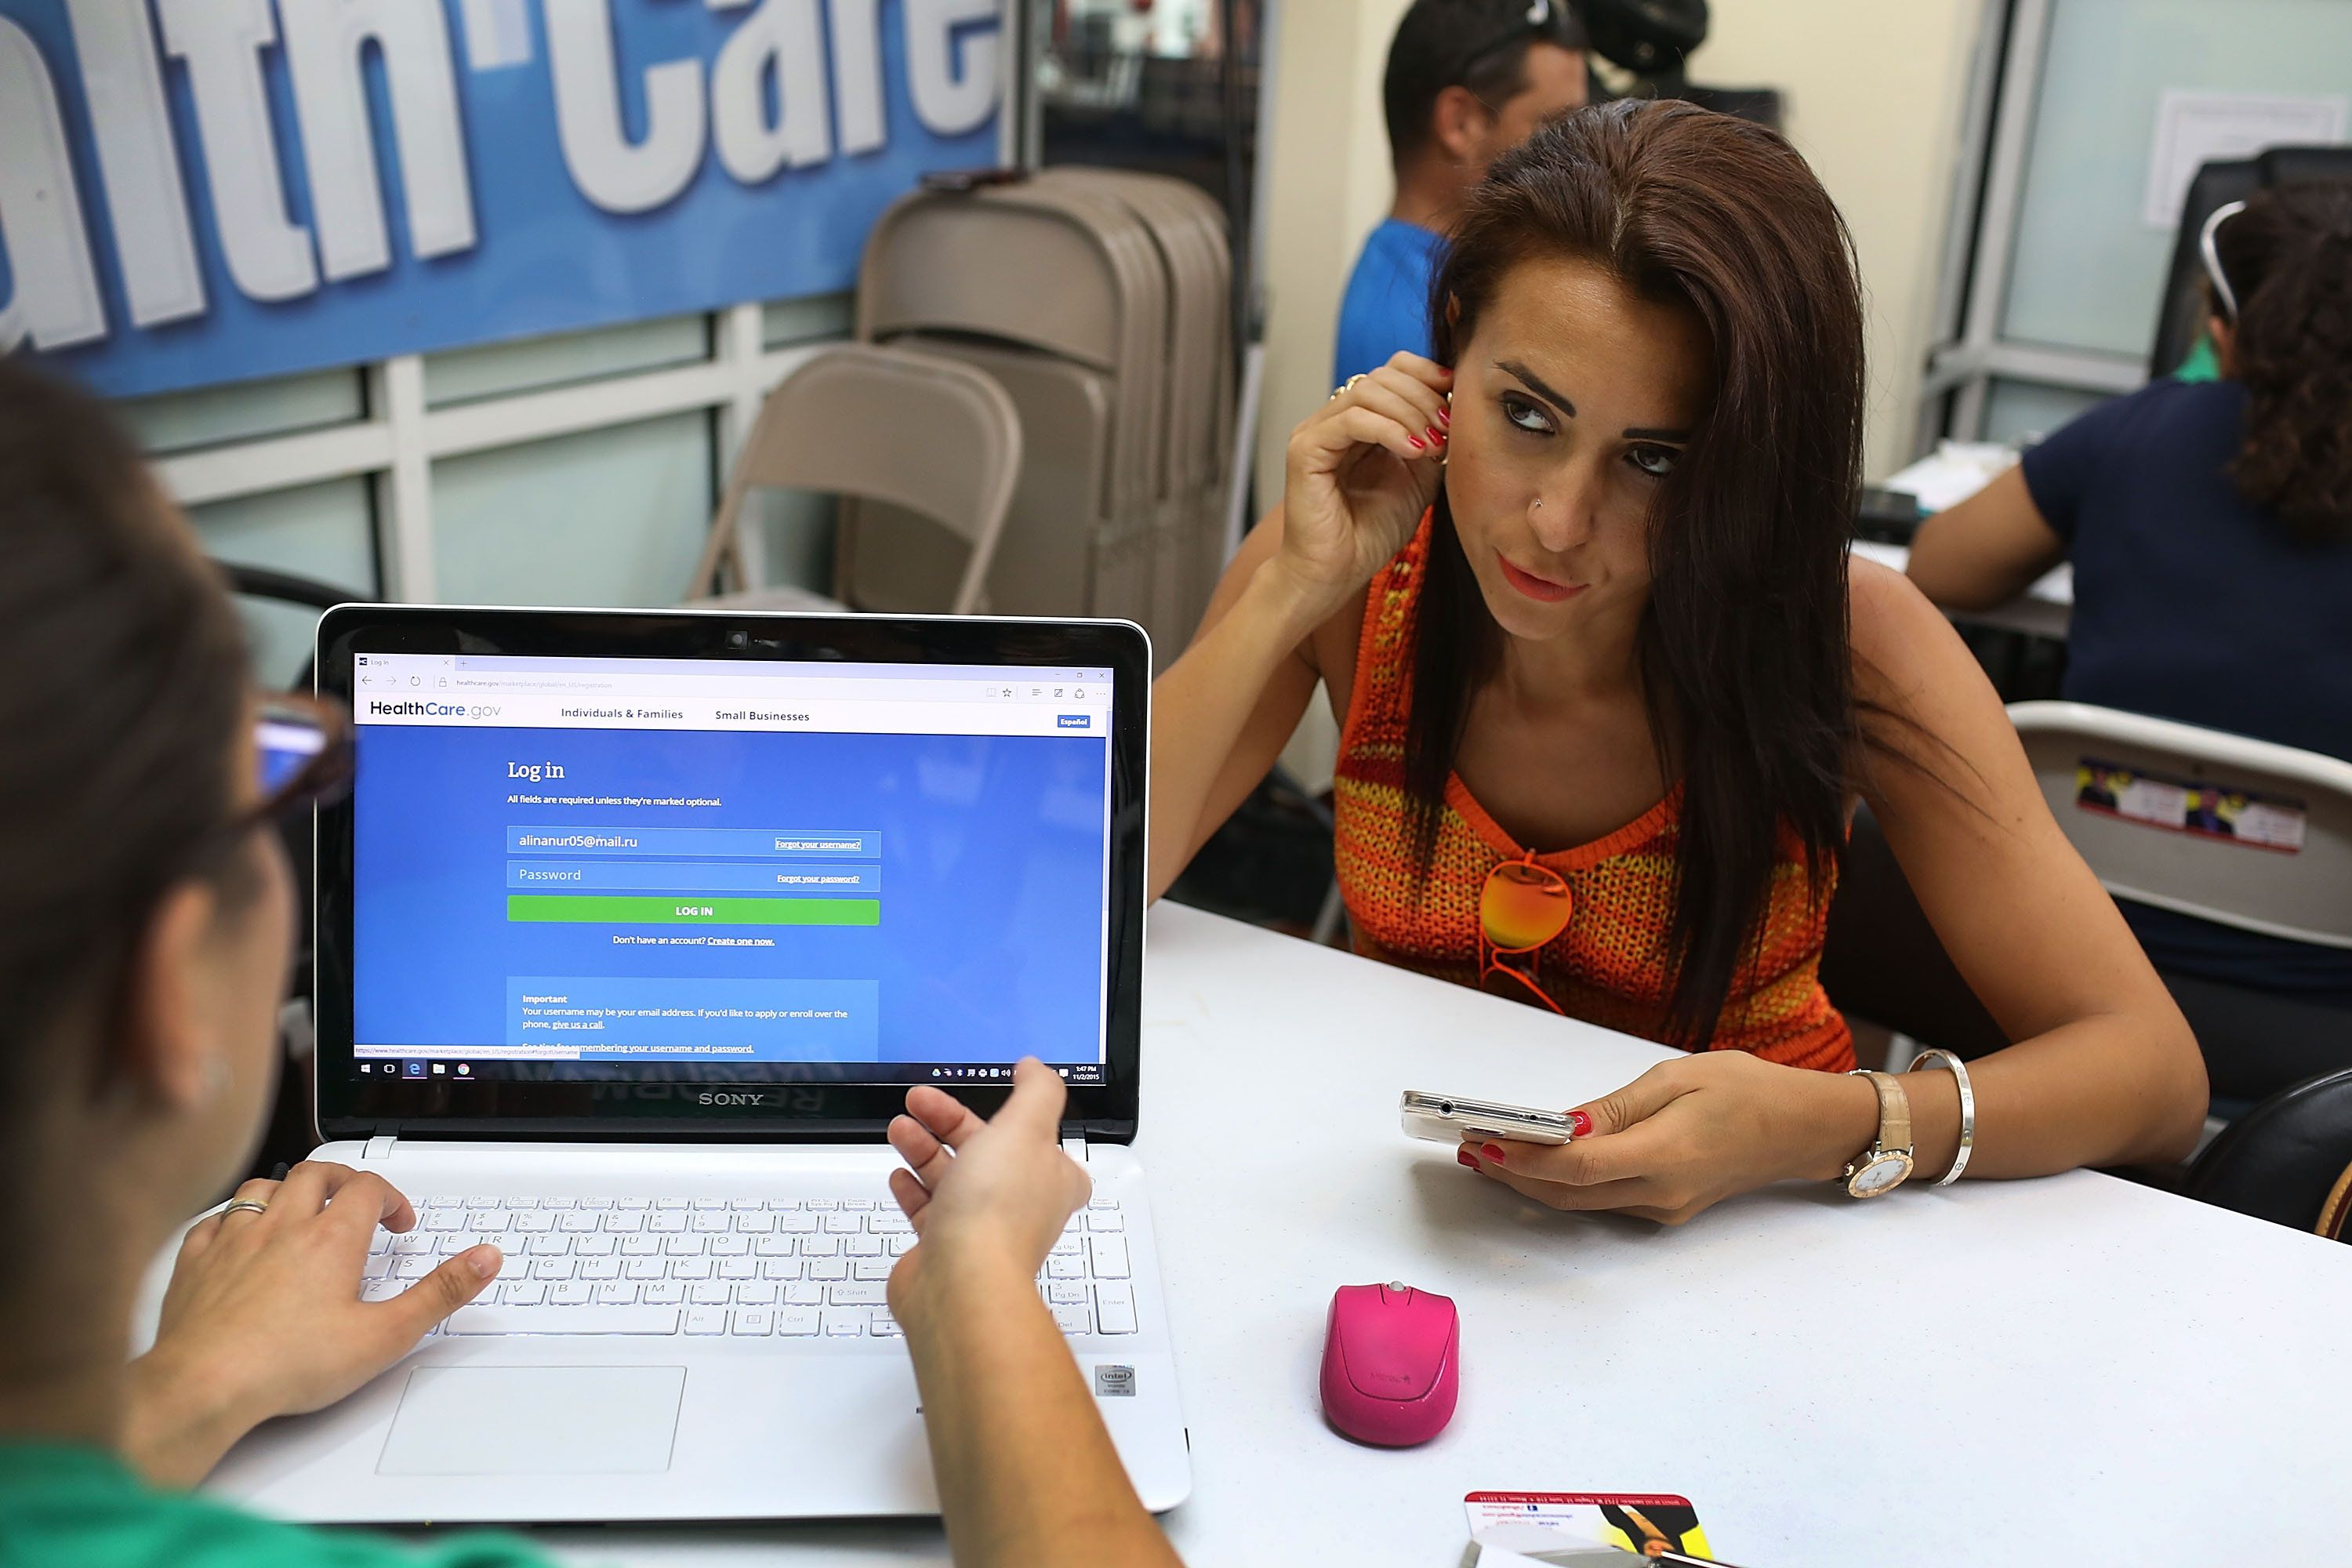 MIAMI, FL - NOVEMBER 02: Alina Nurieva (R)  sits with Gabriela Cisneros, an insurance agent from Sunshine Life and Health Advisors, as she picks an insurance plan available in the third year of the Affordable Care Act at a store setup in the Mall of the Americas on November 2, 2015 in Miami, Florida. Open Enrollment began yesterday for people to sign up for a 2016 insurance plan through the Affordable Care Act.  (Photo by Joe Raedle/Getty Images)